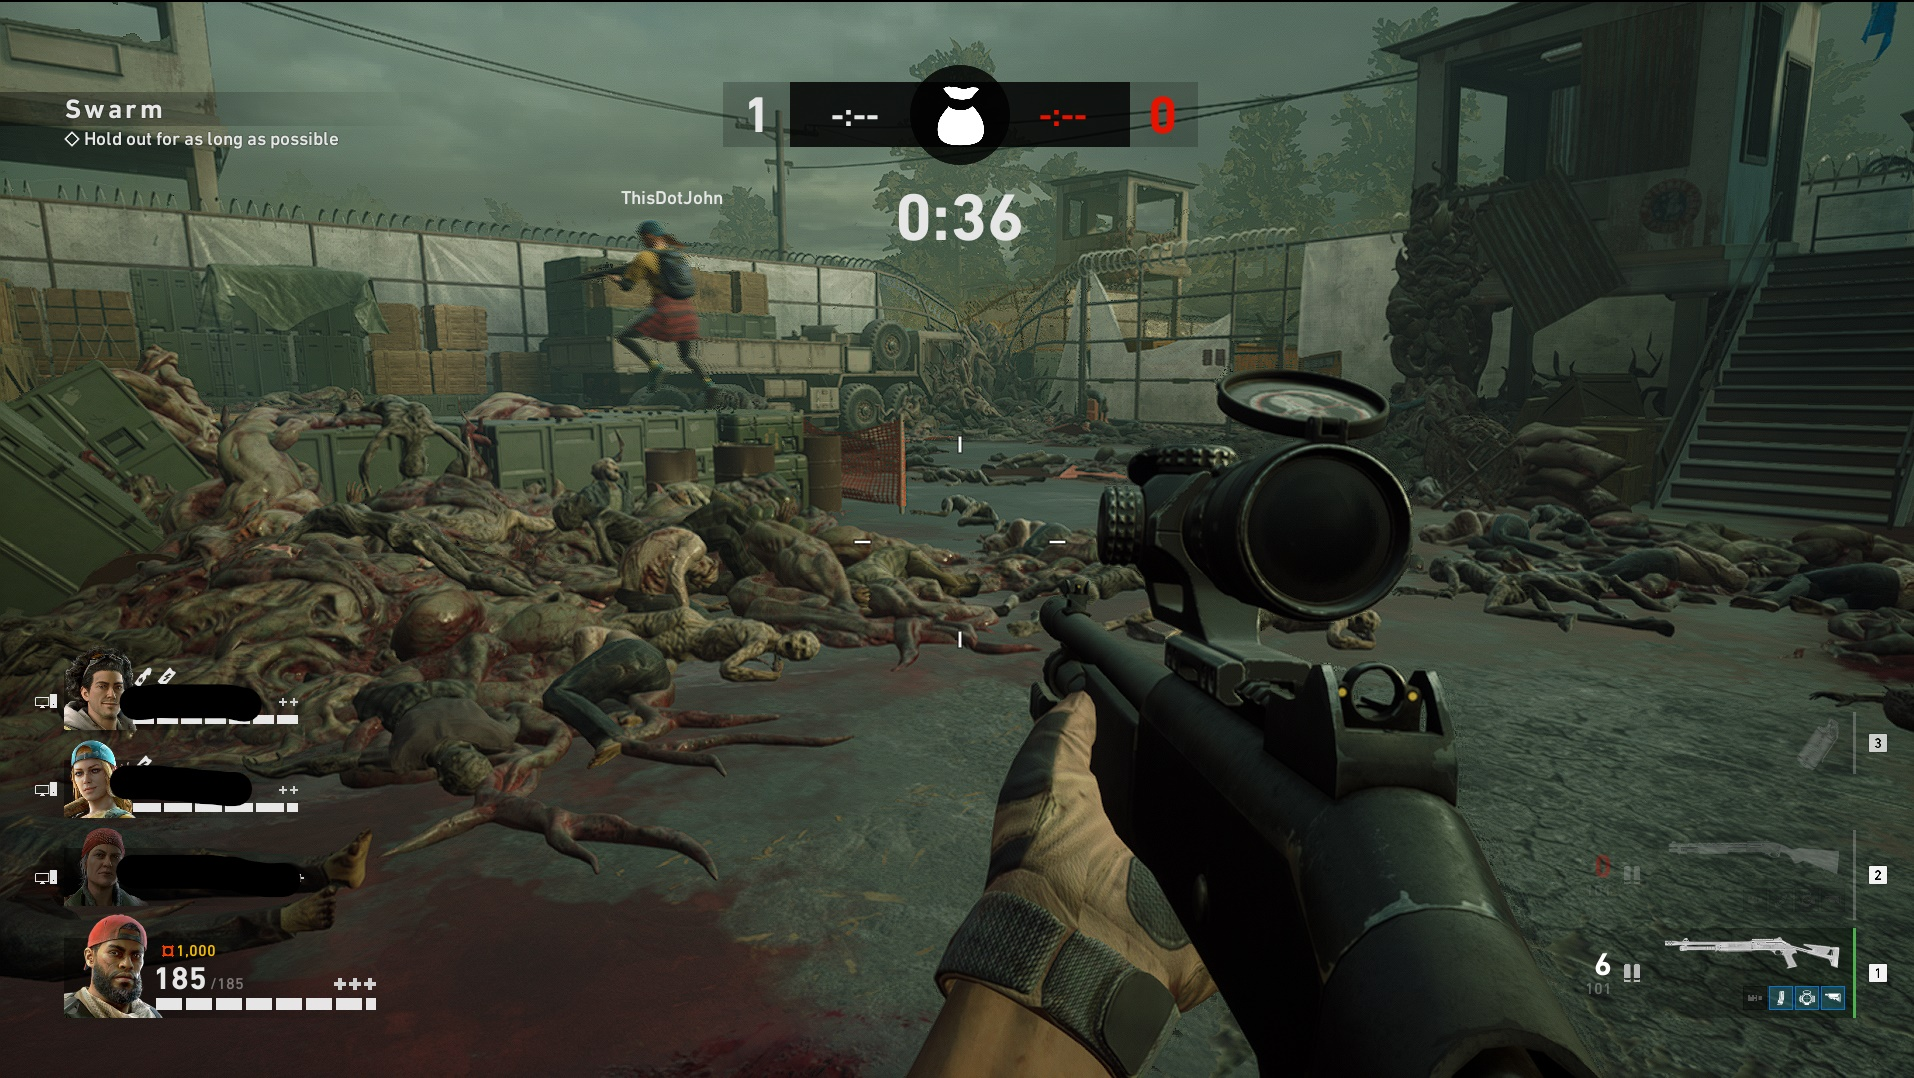 First-person view of holding a sniper rifle. The floor is covered in dead bodies and a countdown reads '36 seconds'